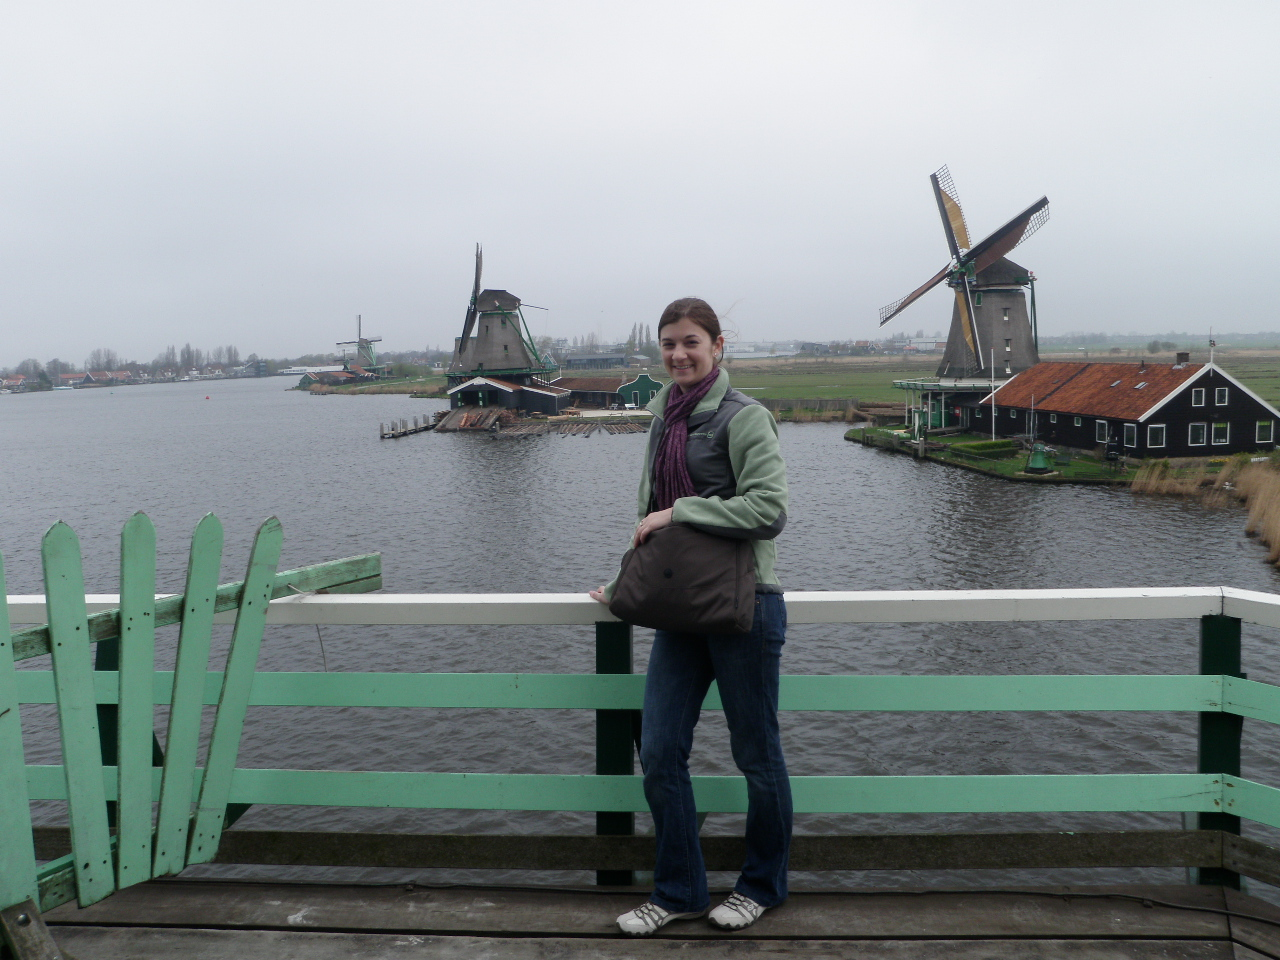 Heather with some Windmills